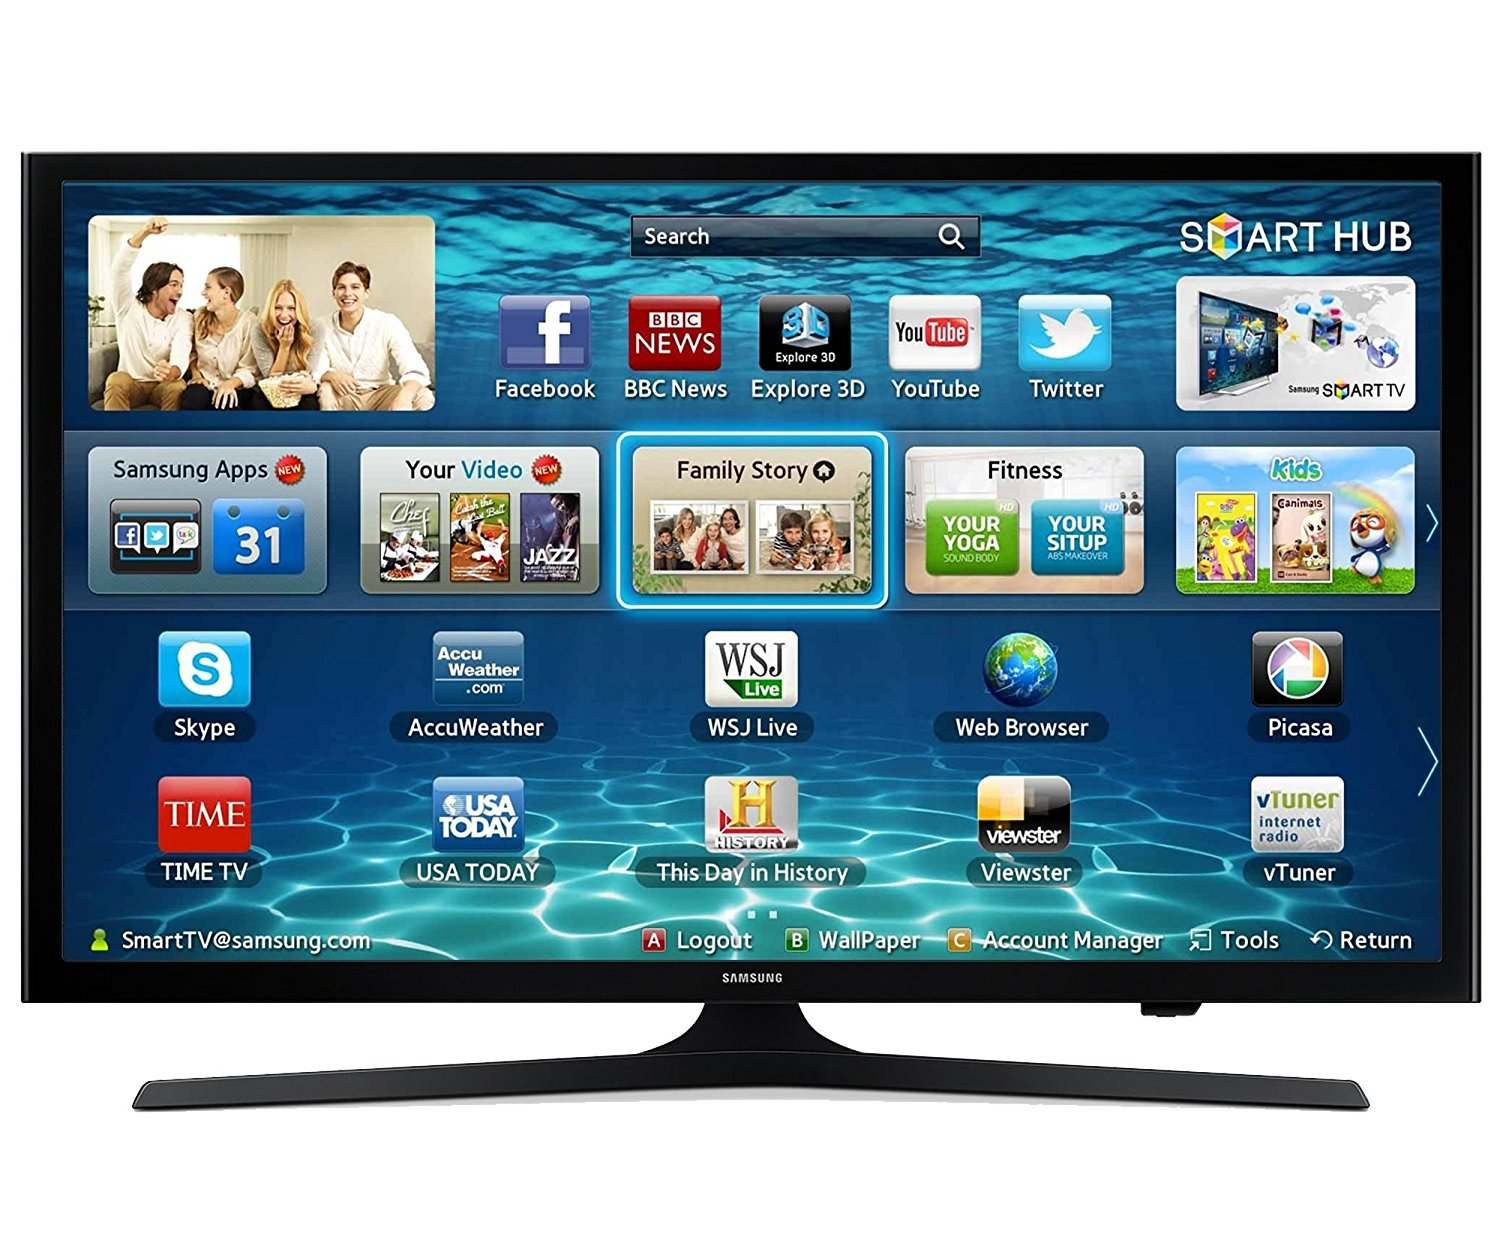 Samsung 40'' Class 1080p Smart LED HDTV with Full Web Browser